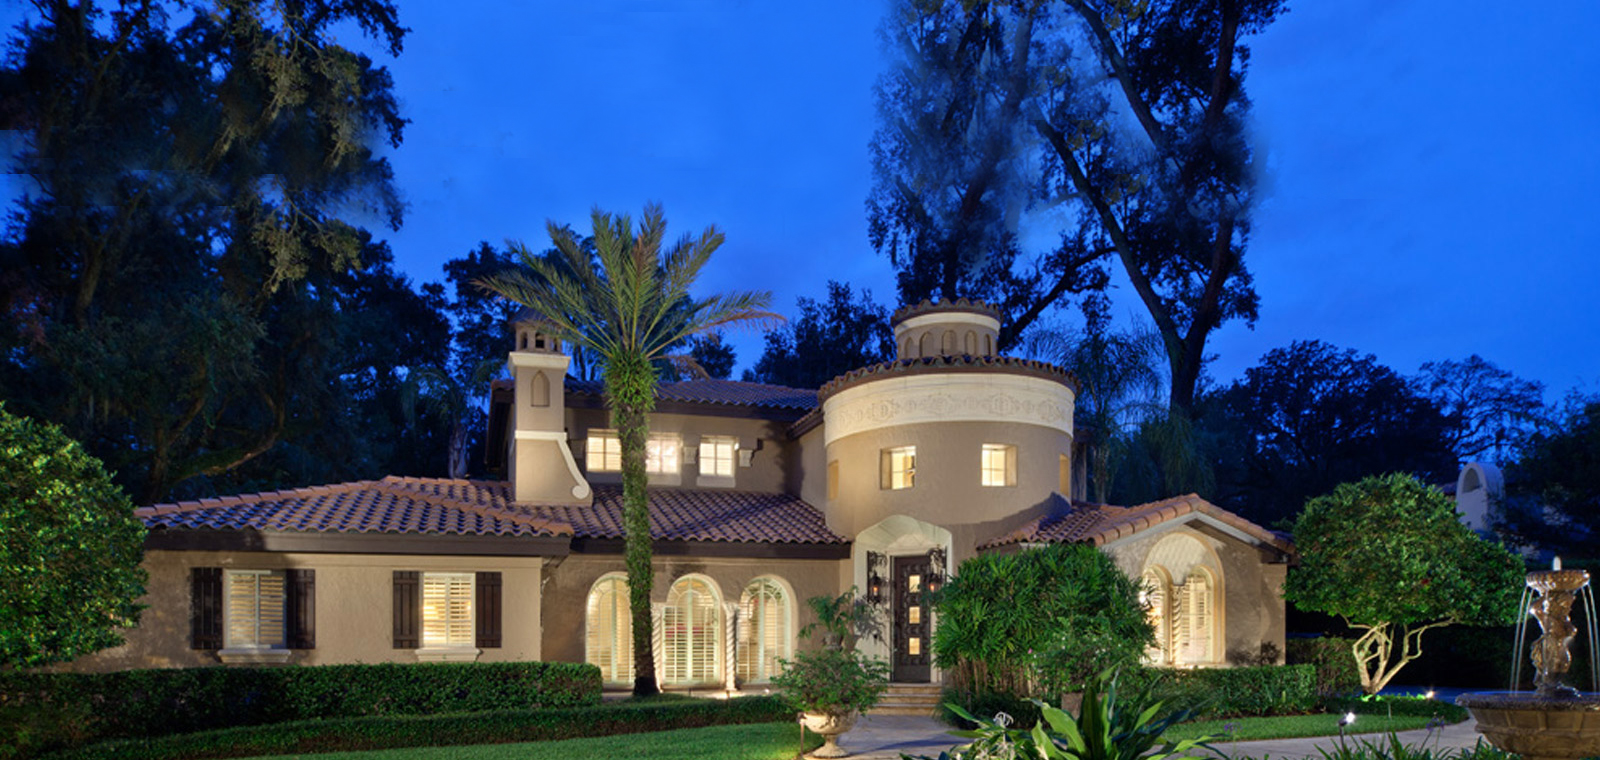 Luxury homes in Central Florida - Chris Quarles Properties